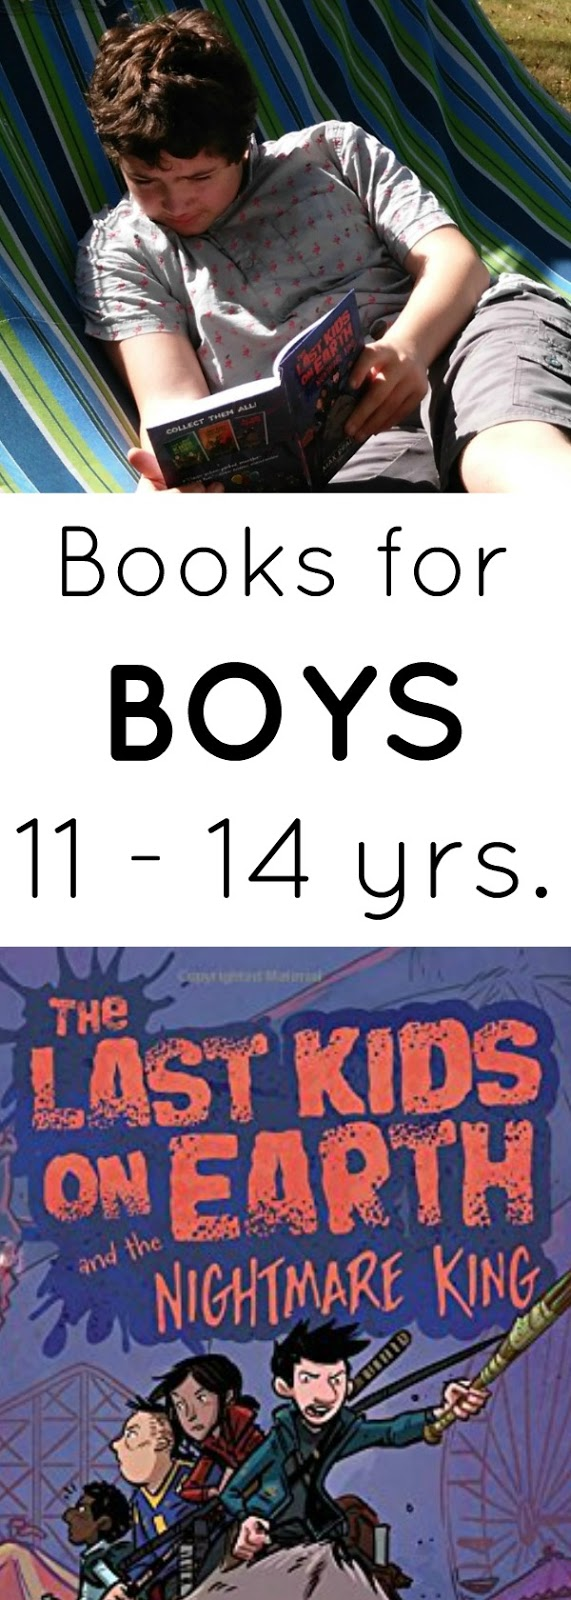 Books for Boys: 11 to 14 years: The Last Kids on Earth